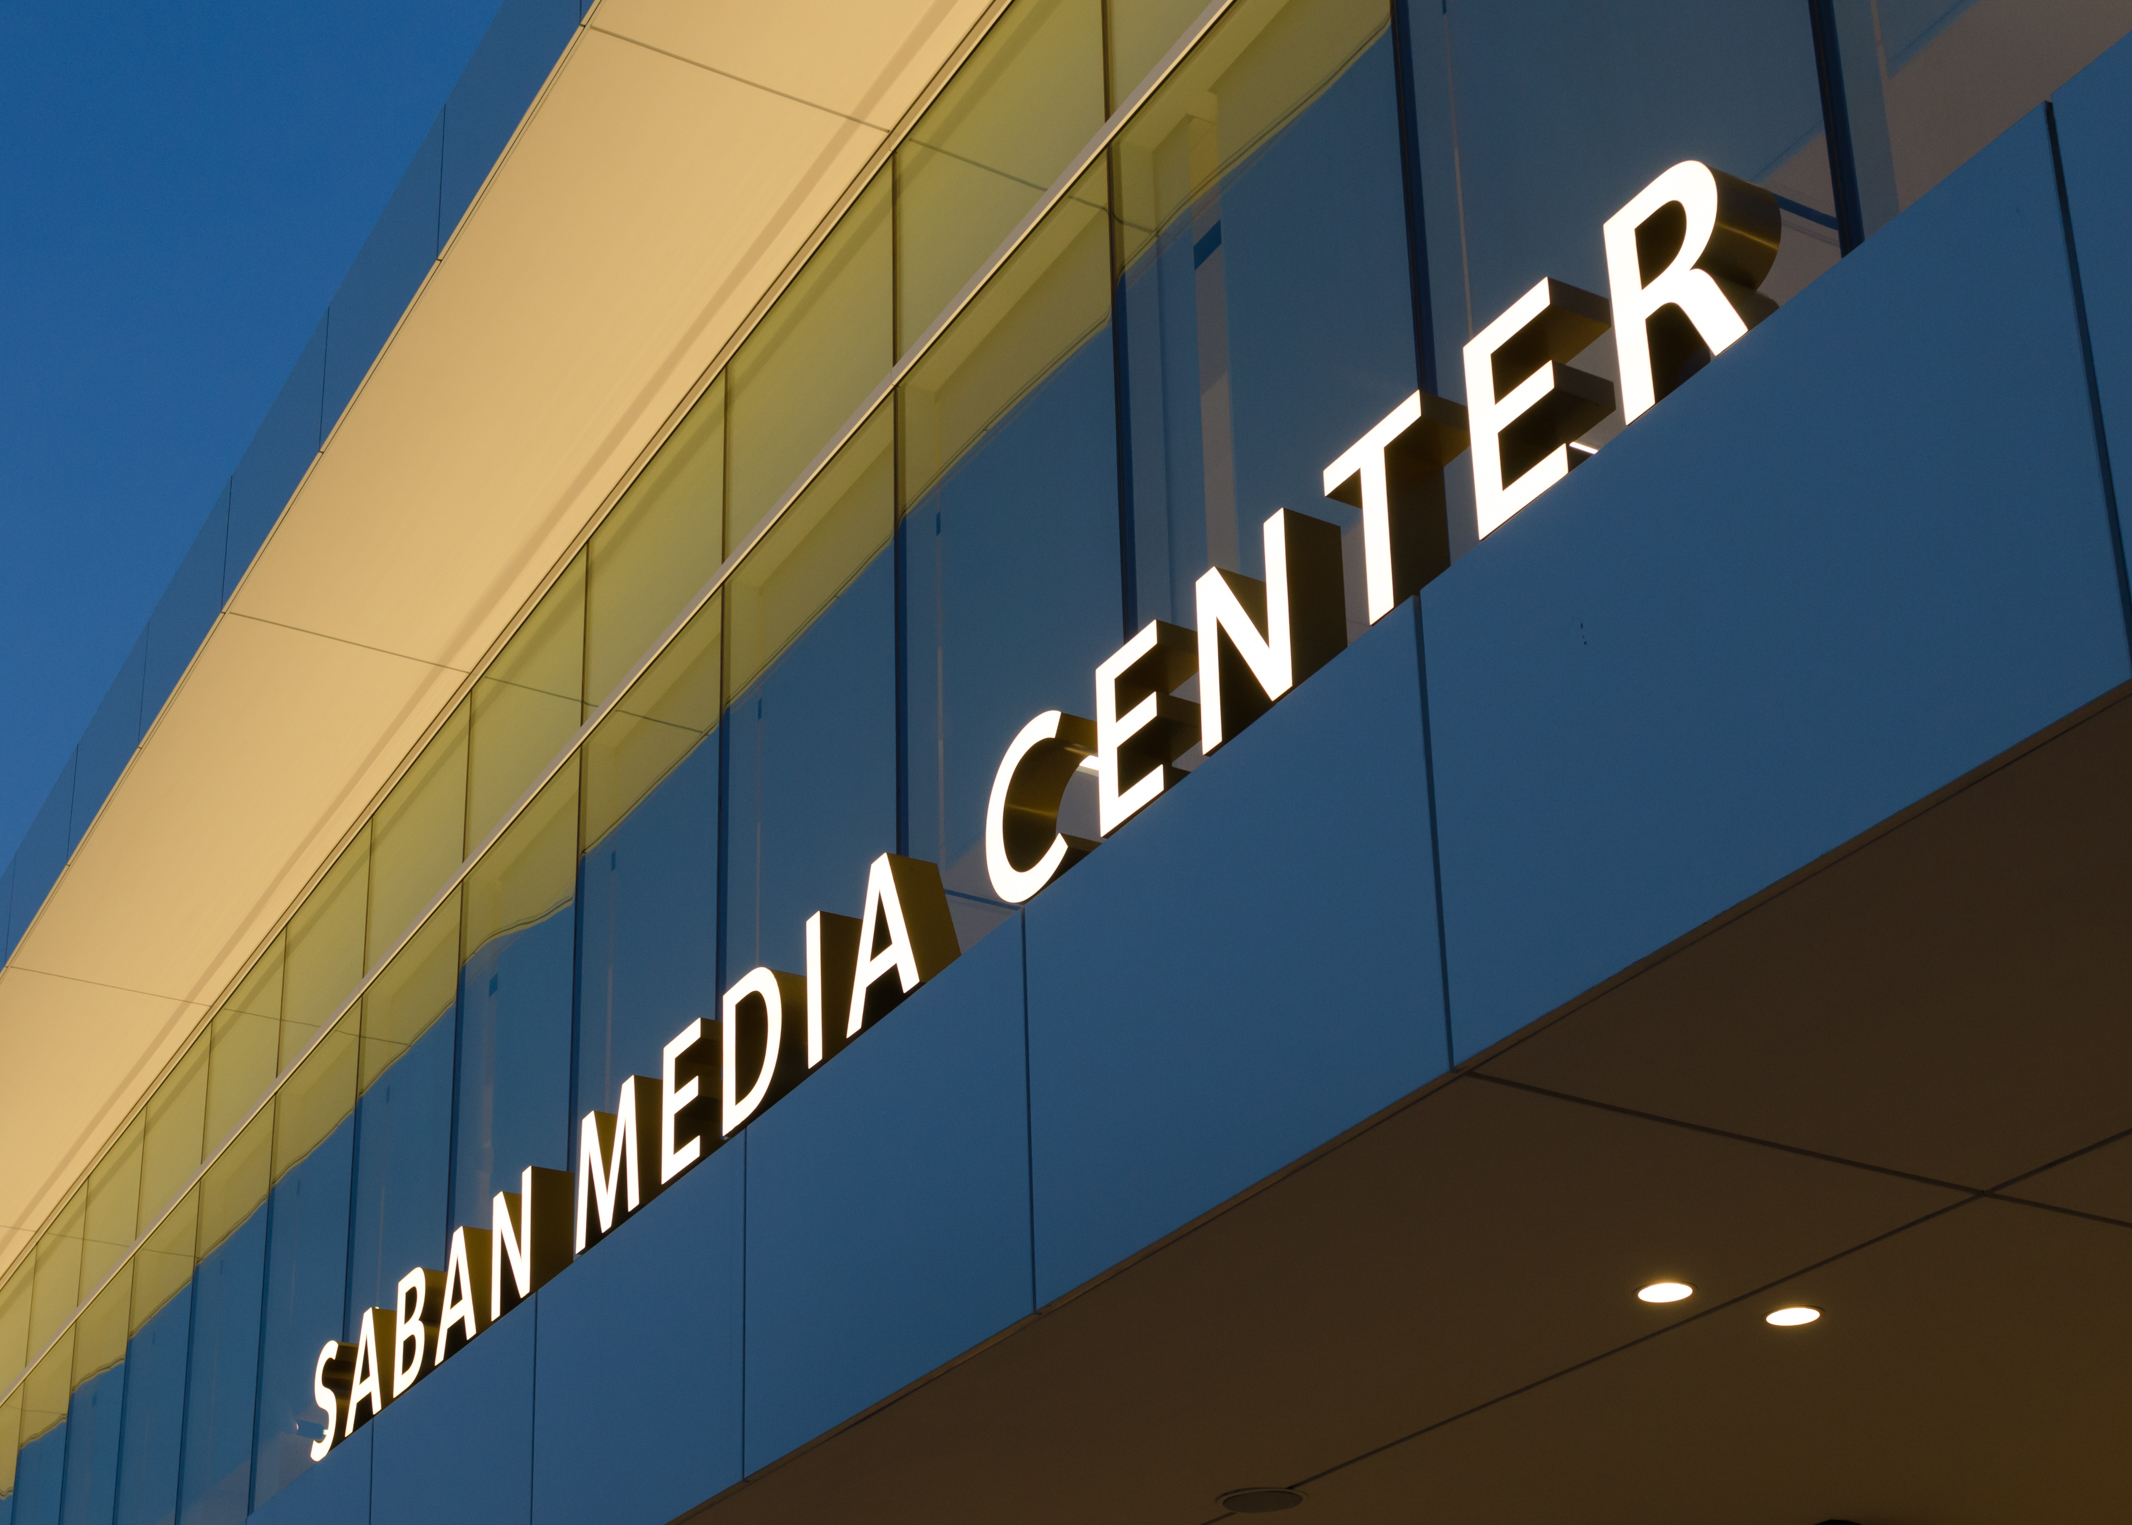 Television Academy_Saban Media Center Sign-3.jpg